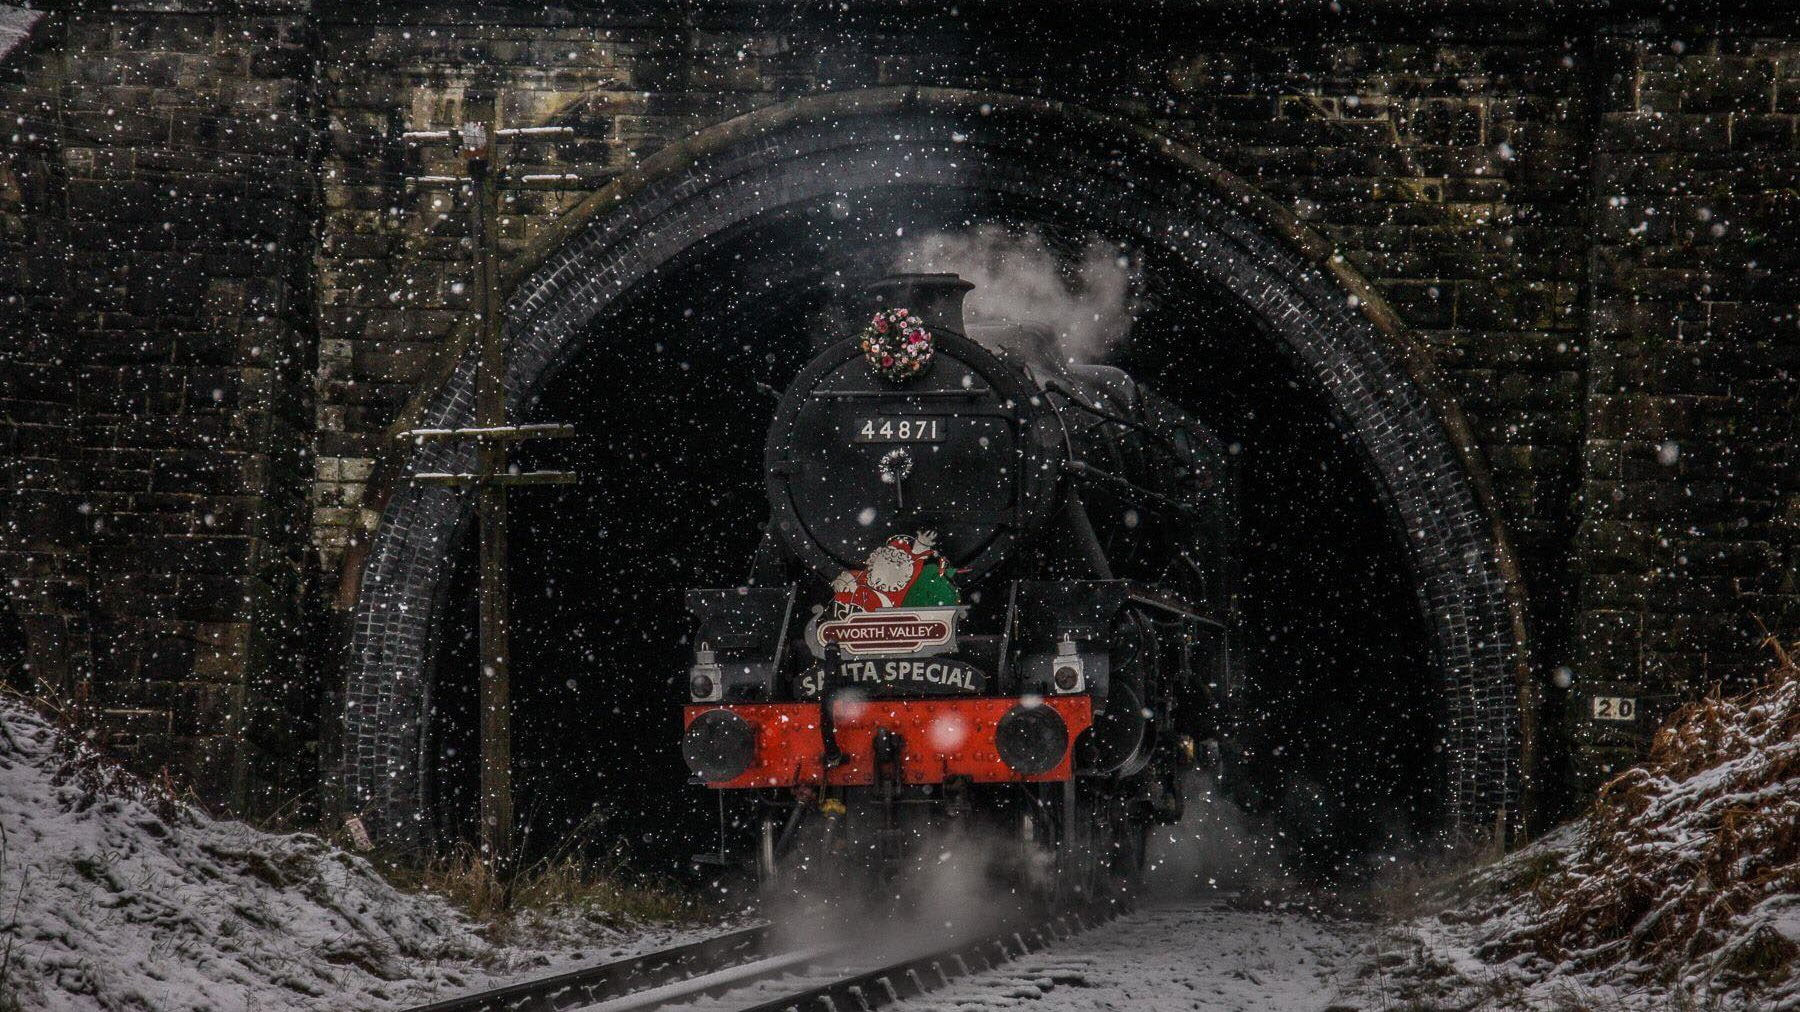 44871 bursts out of Mytholmes Tunnel on the Keighley and Worth Valley Railway